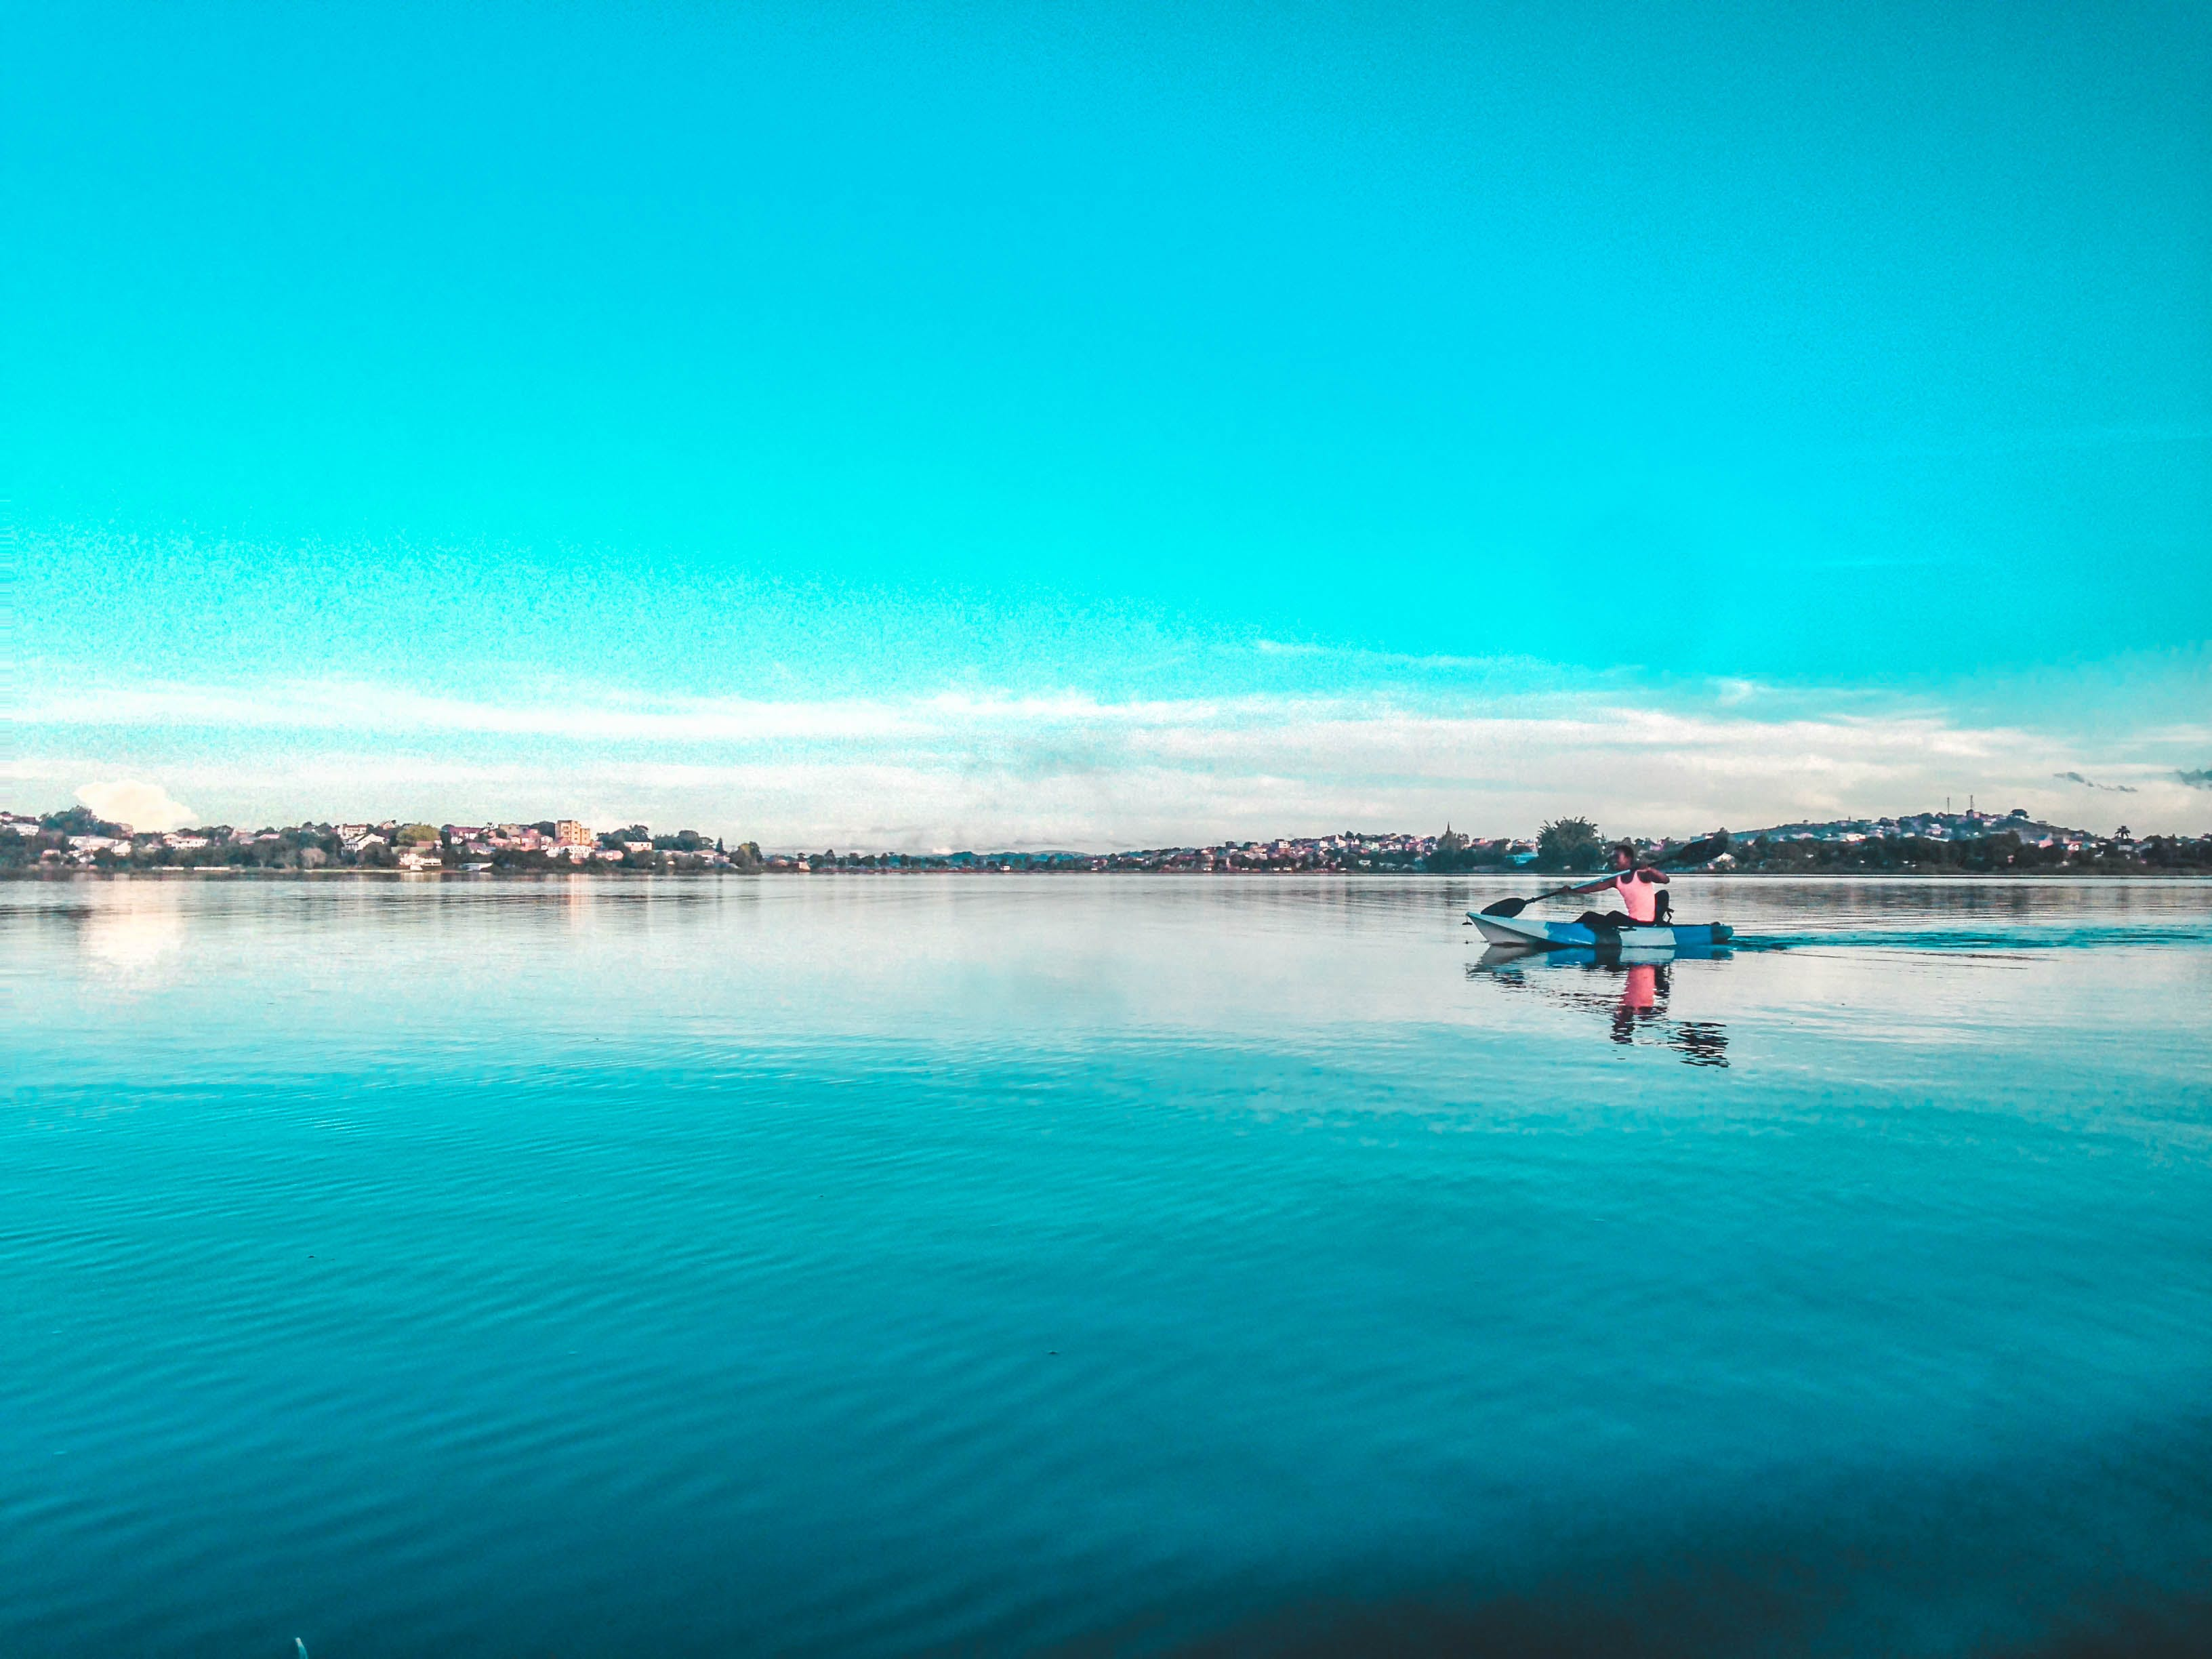 Free stock photo of Blue Lake Jonas Androx Boat Lonely Inspired